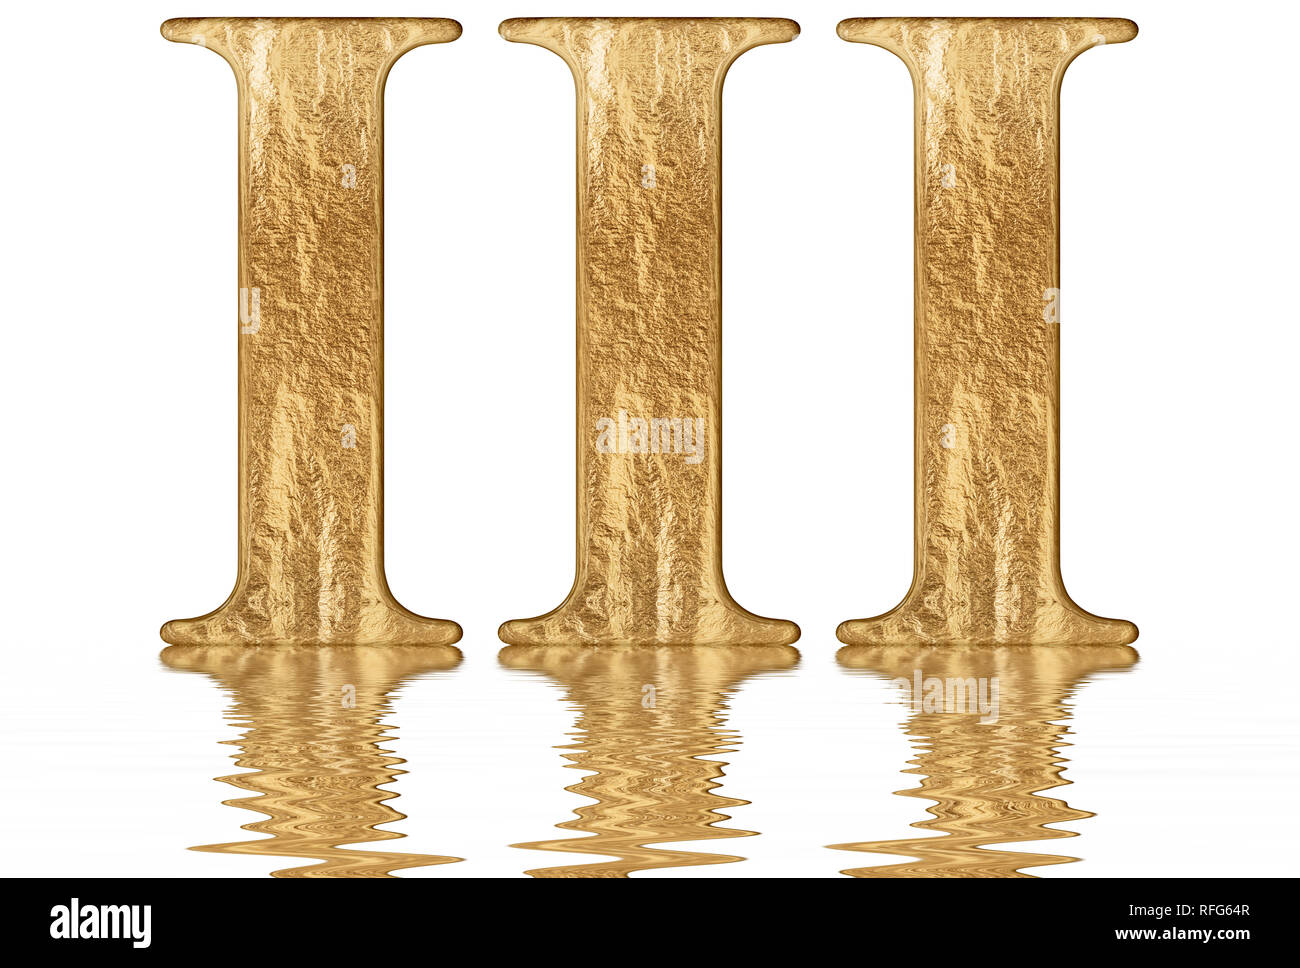 Roman numeral III, tres, 3, three, reflected on the water surface ...